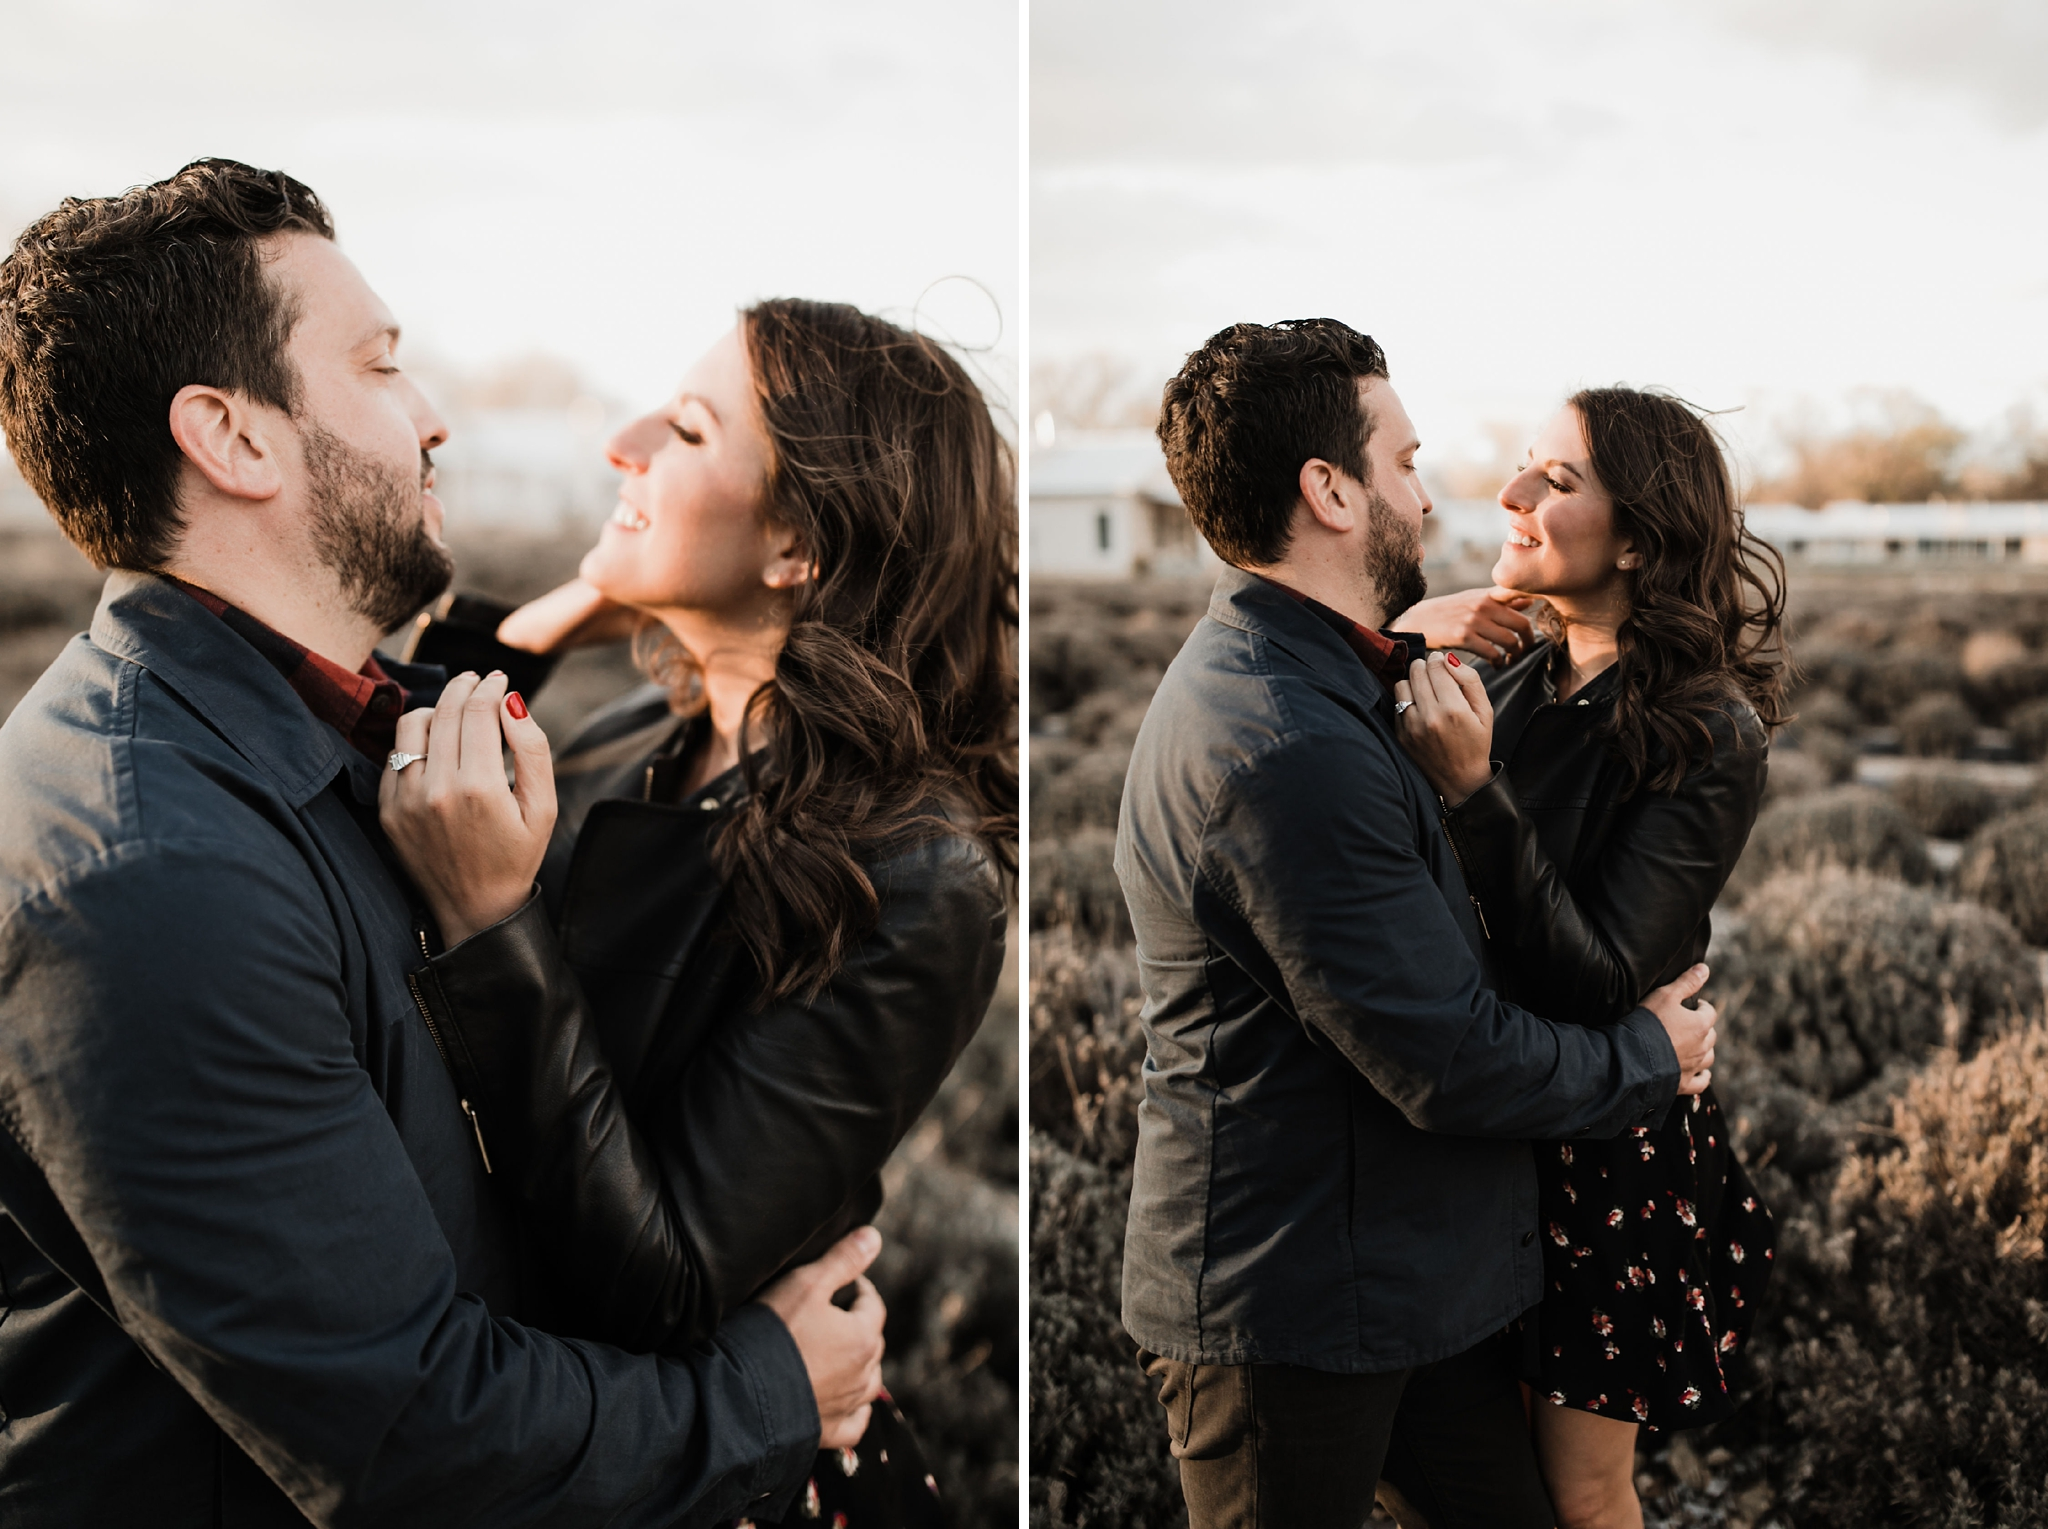 Alicia+lucia+photography+-+albuquerque+wedding+photographer+-+santa+fe+wedding+photography+-+new+mexico+wedding+photographer+-+new+mexico+wedding+-+new+mexico+engagement+-+los+poblanos+engagement+-+los+poblanos+wedding+-+fall+wedding_0035.jpg